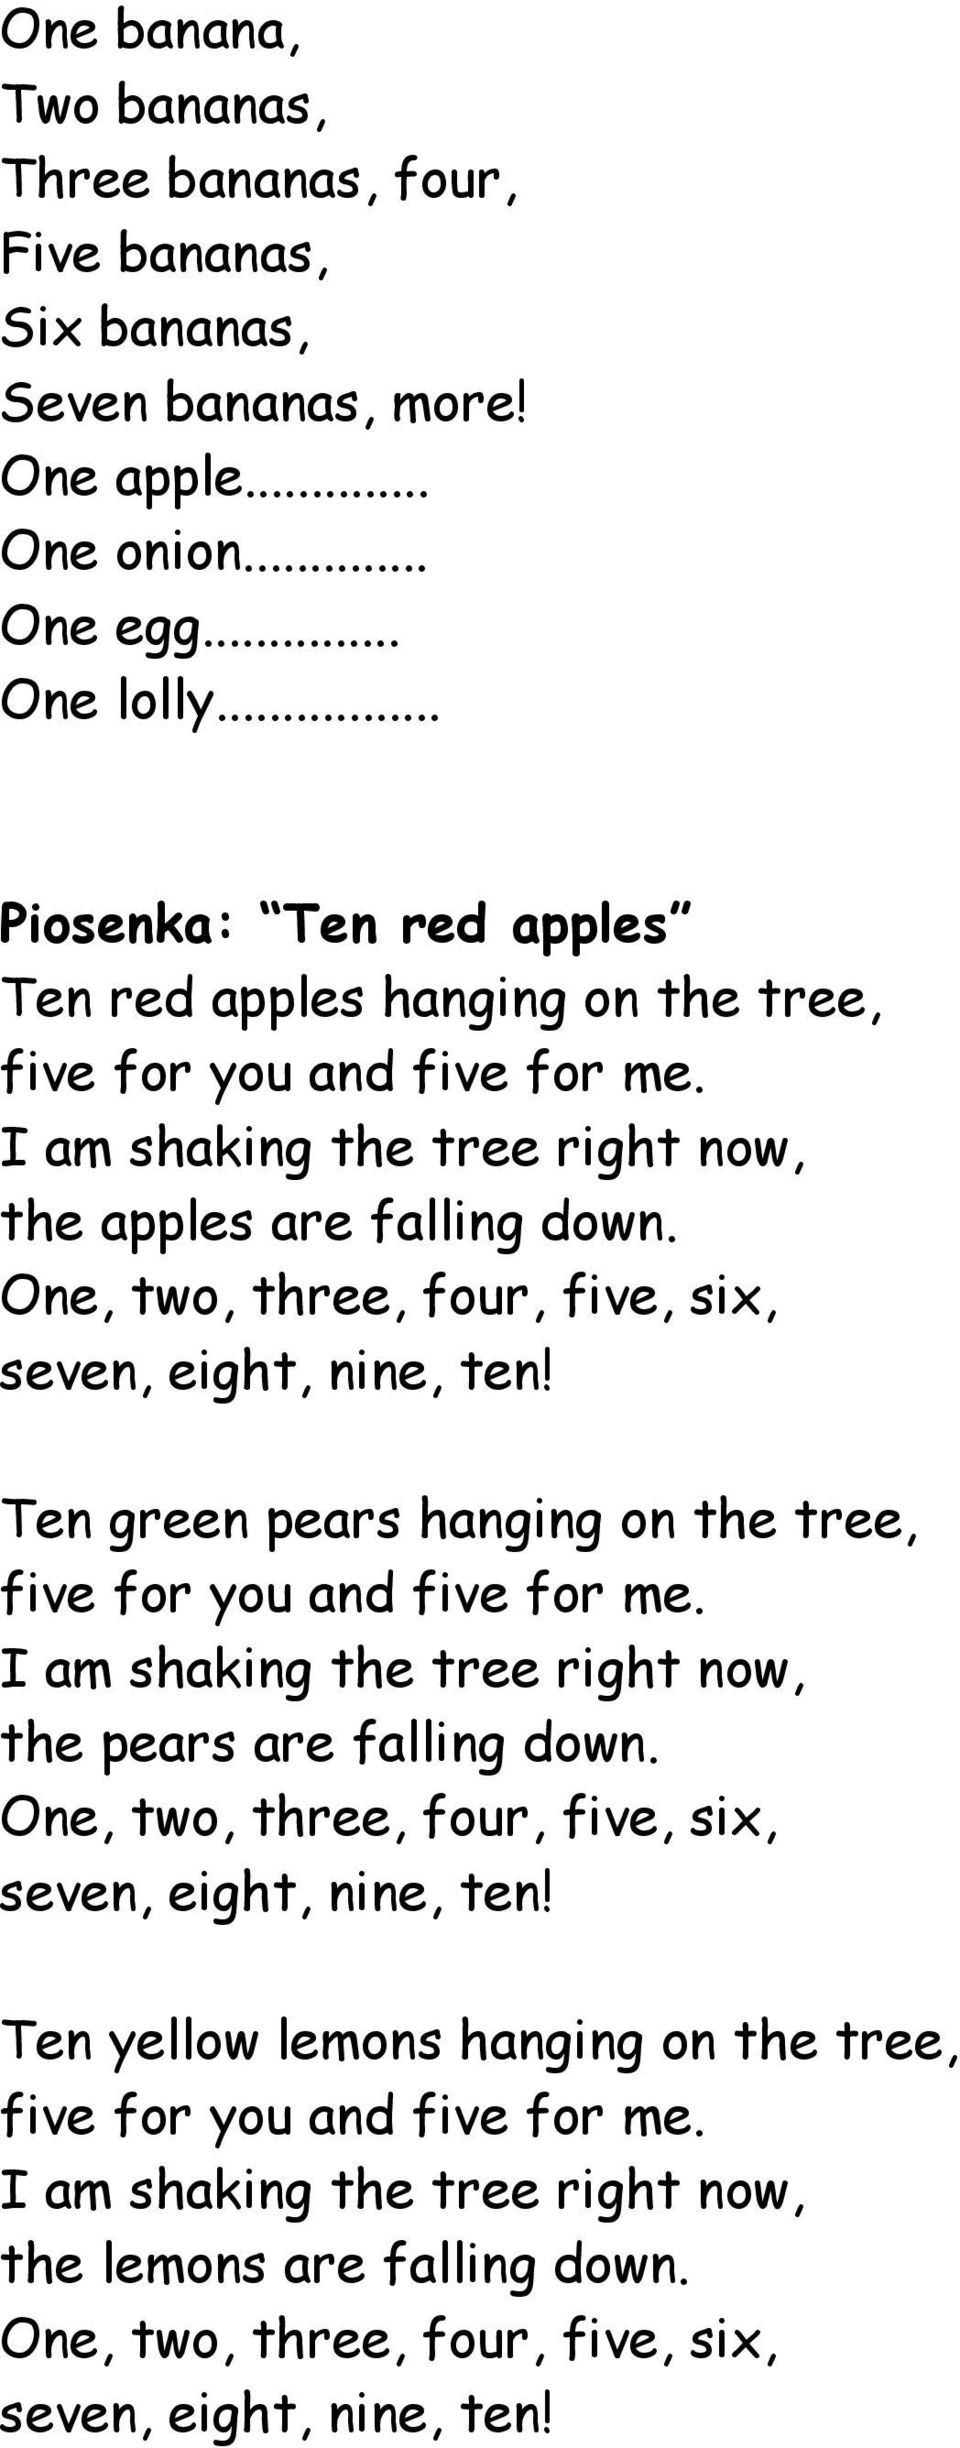 One, two, three, four, five, six, seven, eight, nine, ten! Ten green pears hanging on the tree, five for you and five for me.